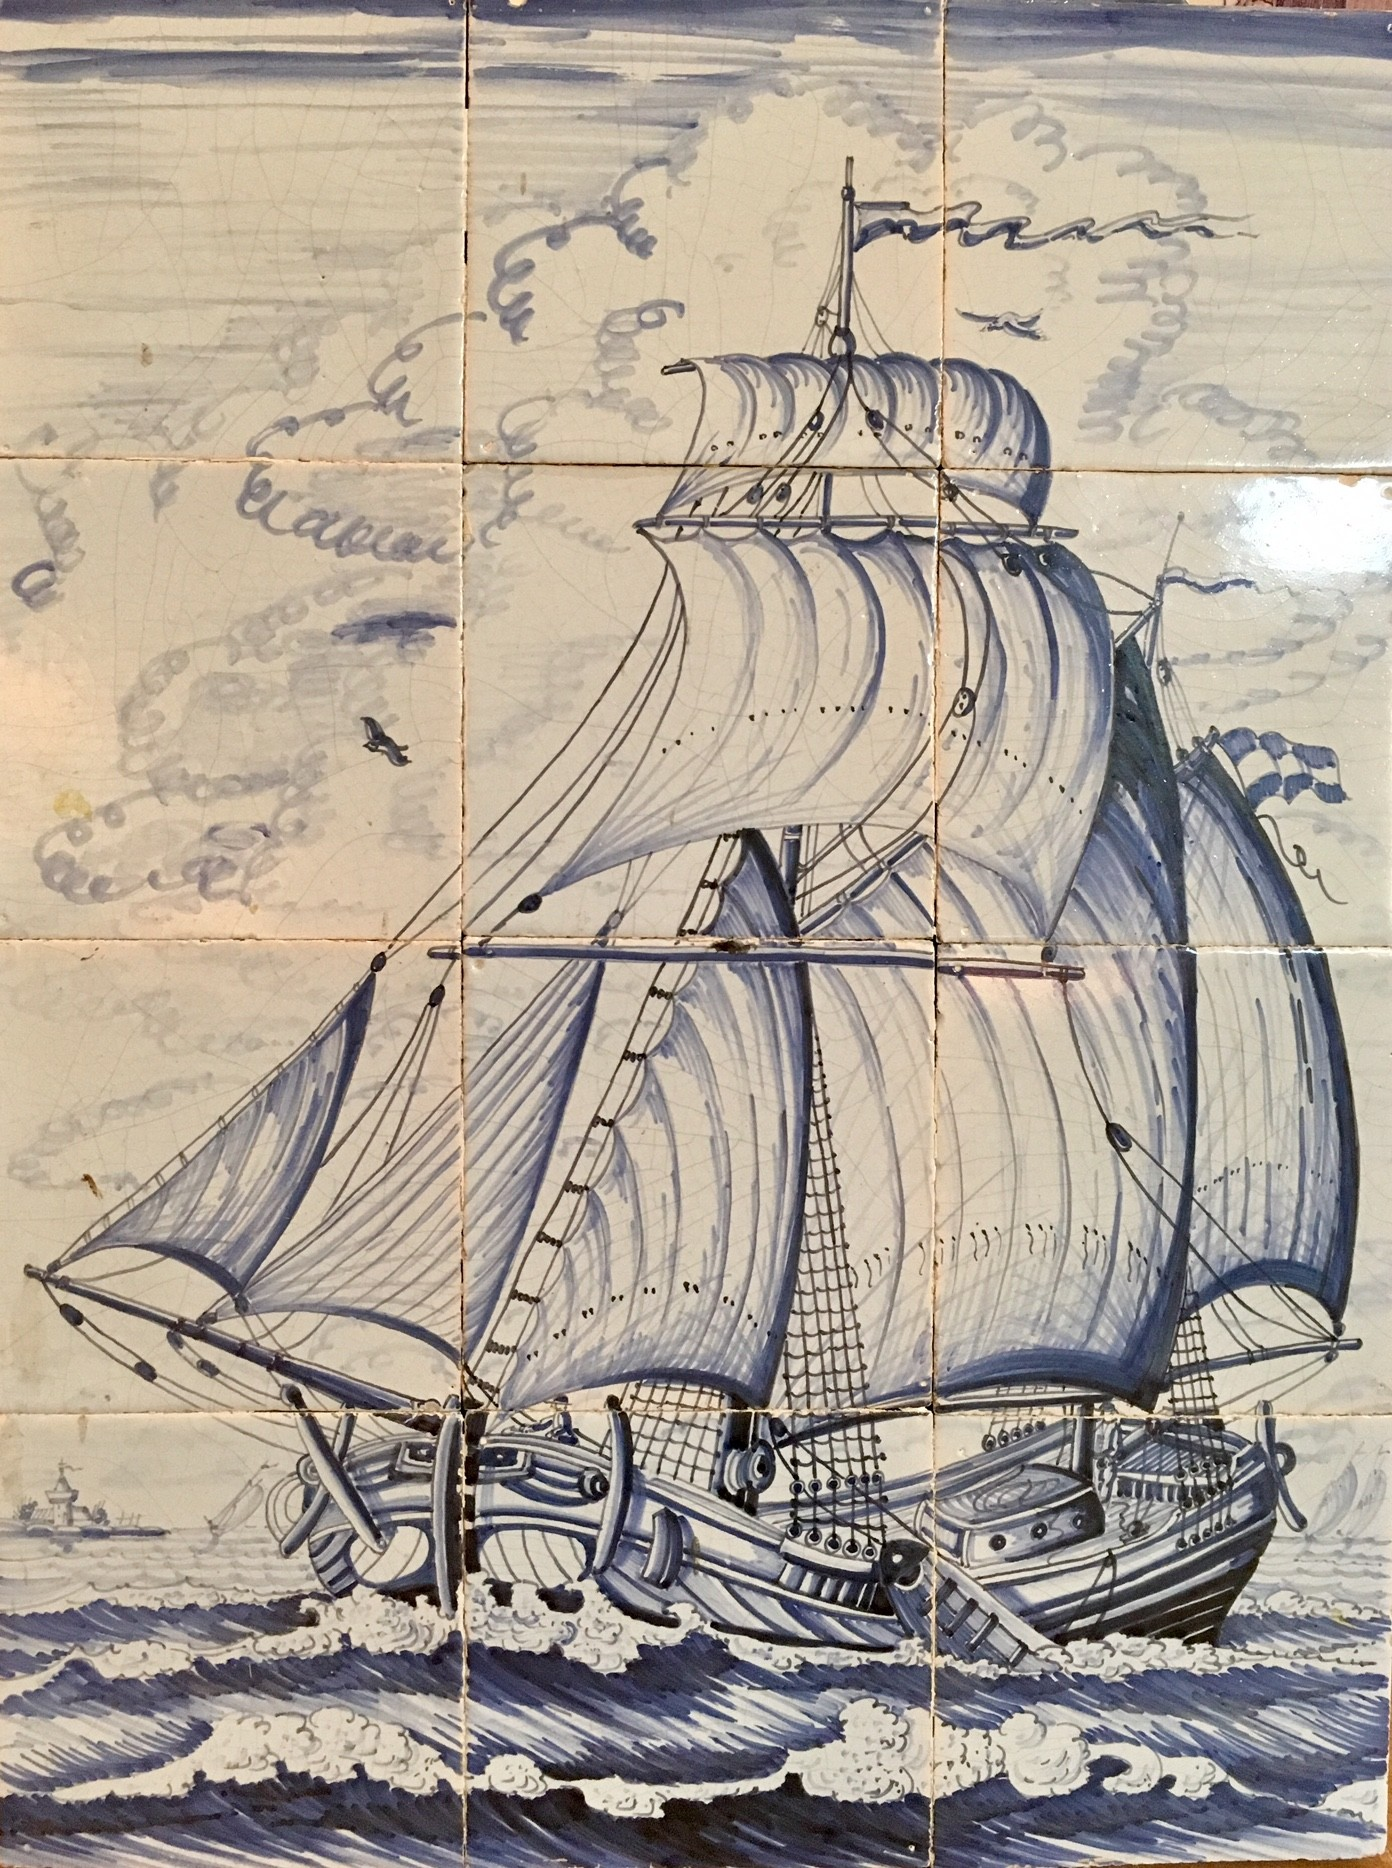 Tile tableau of sailing vessels